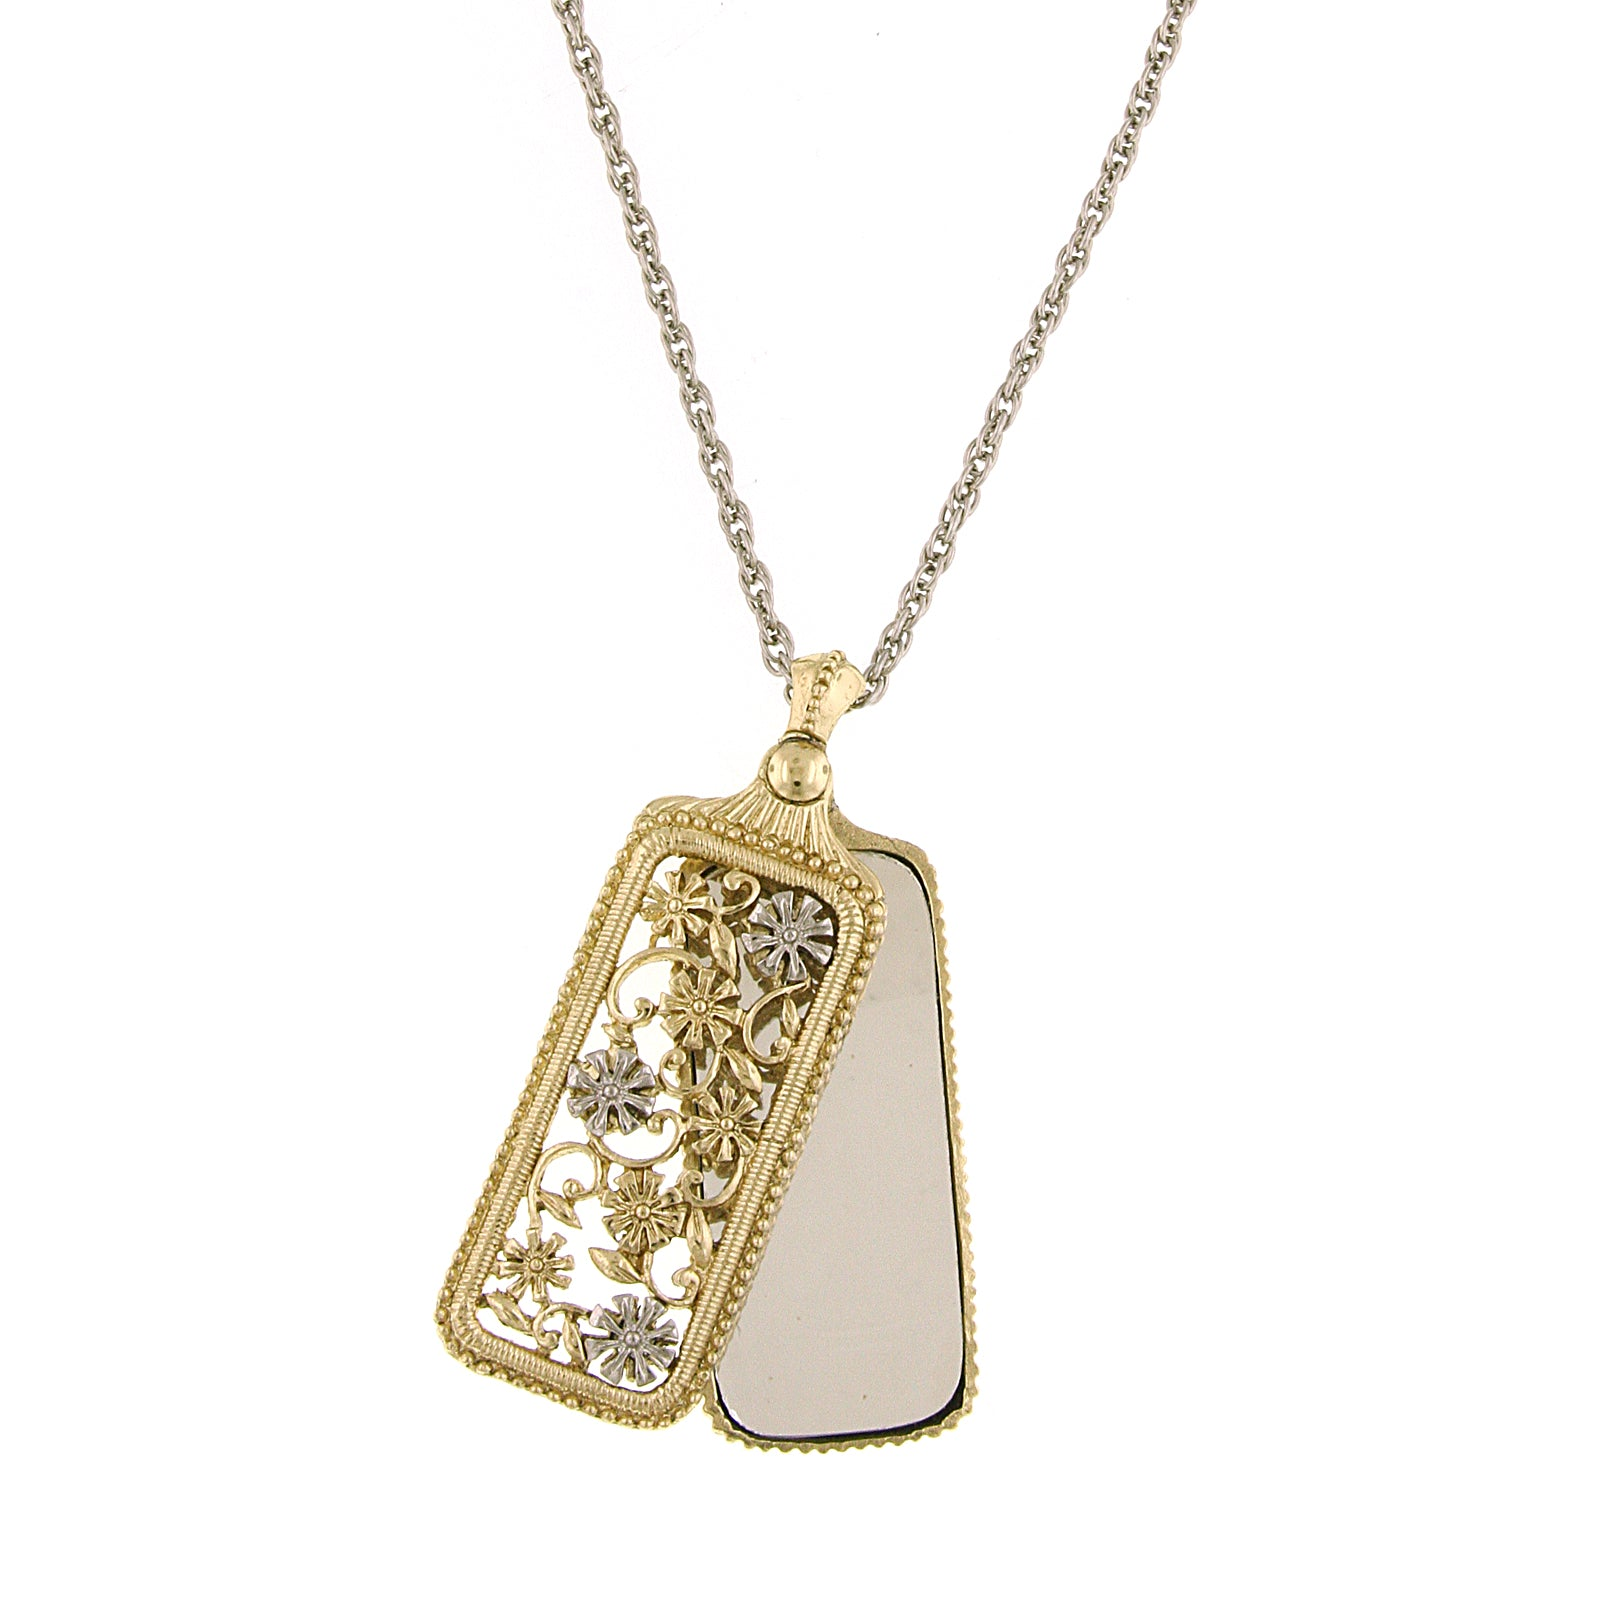 1928 Co Gold and Silver-Tone Flower Filigree Mirror Pendant Necklace 30